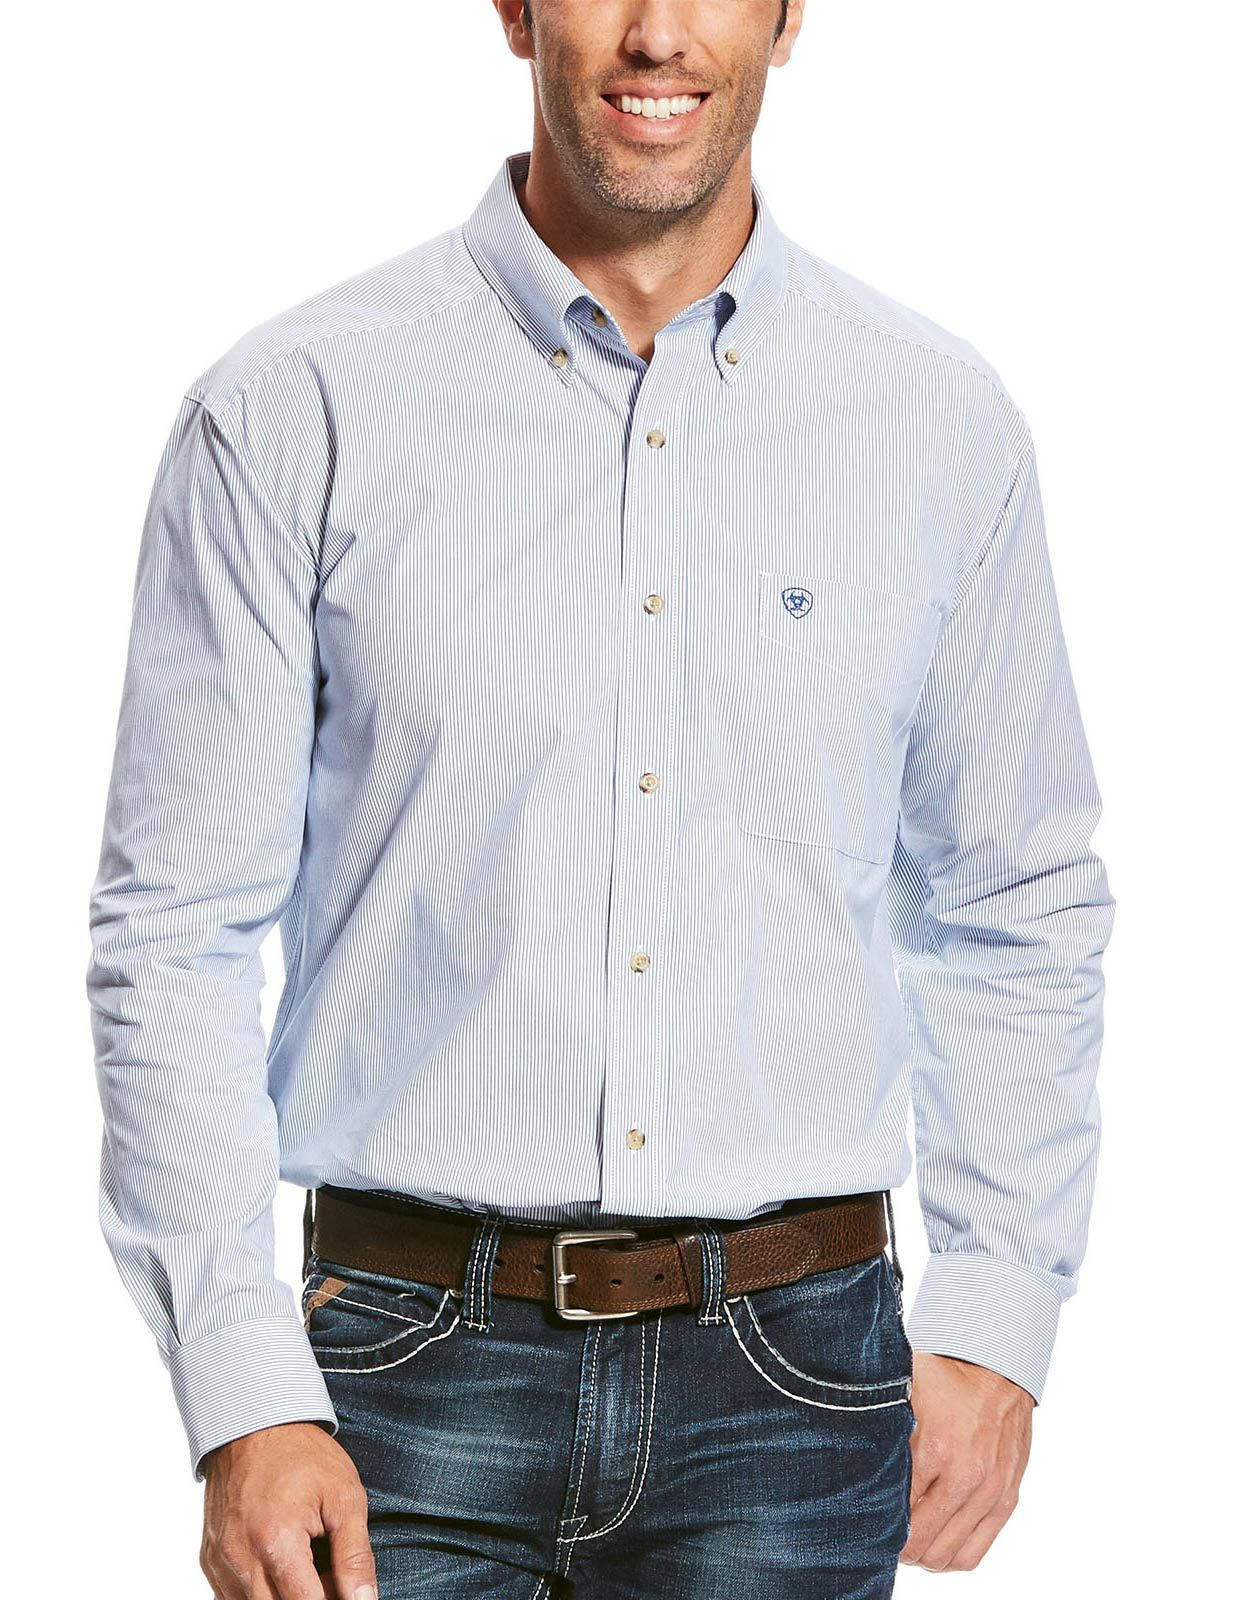 Ariat Men's Pro Series Classic Fit Long Sleeve Stripe Button Down Shirt - True Blue